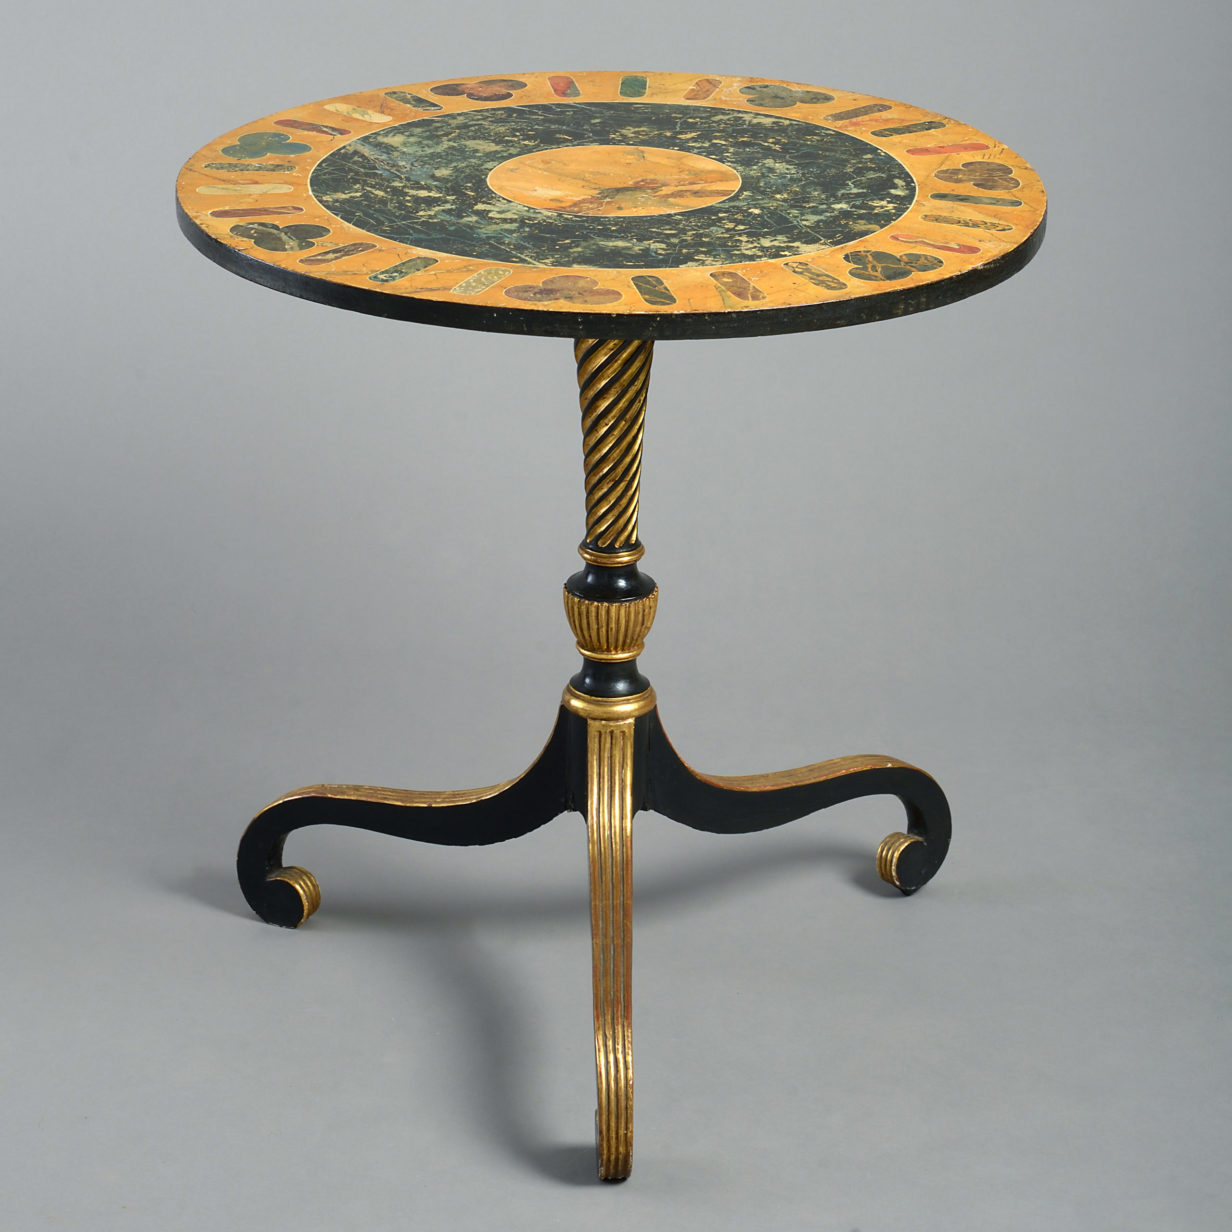 A Regency Period Occasional Table